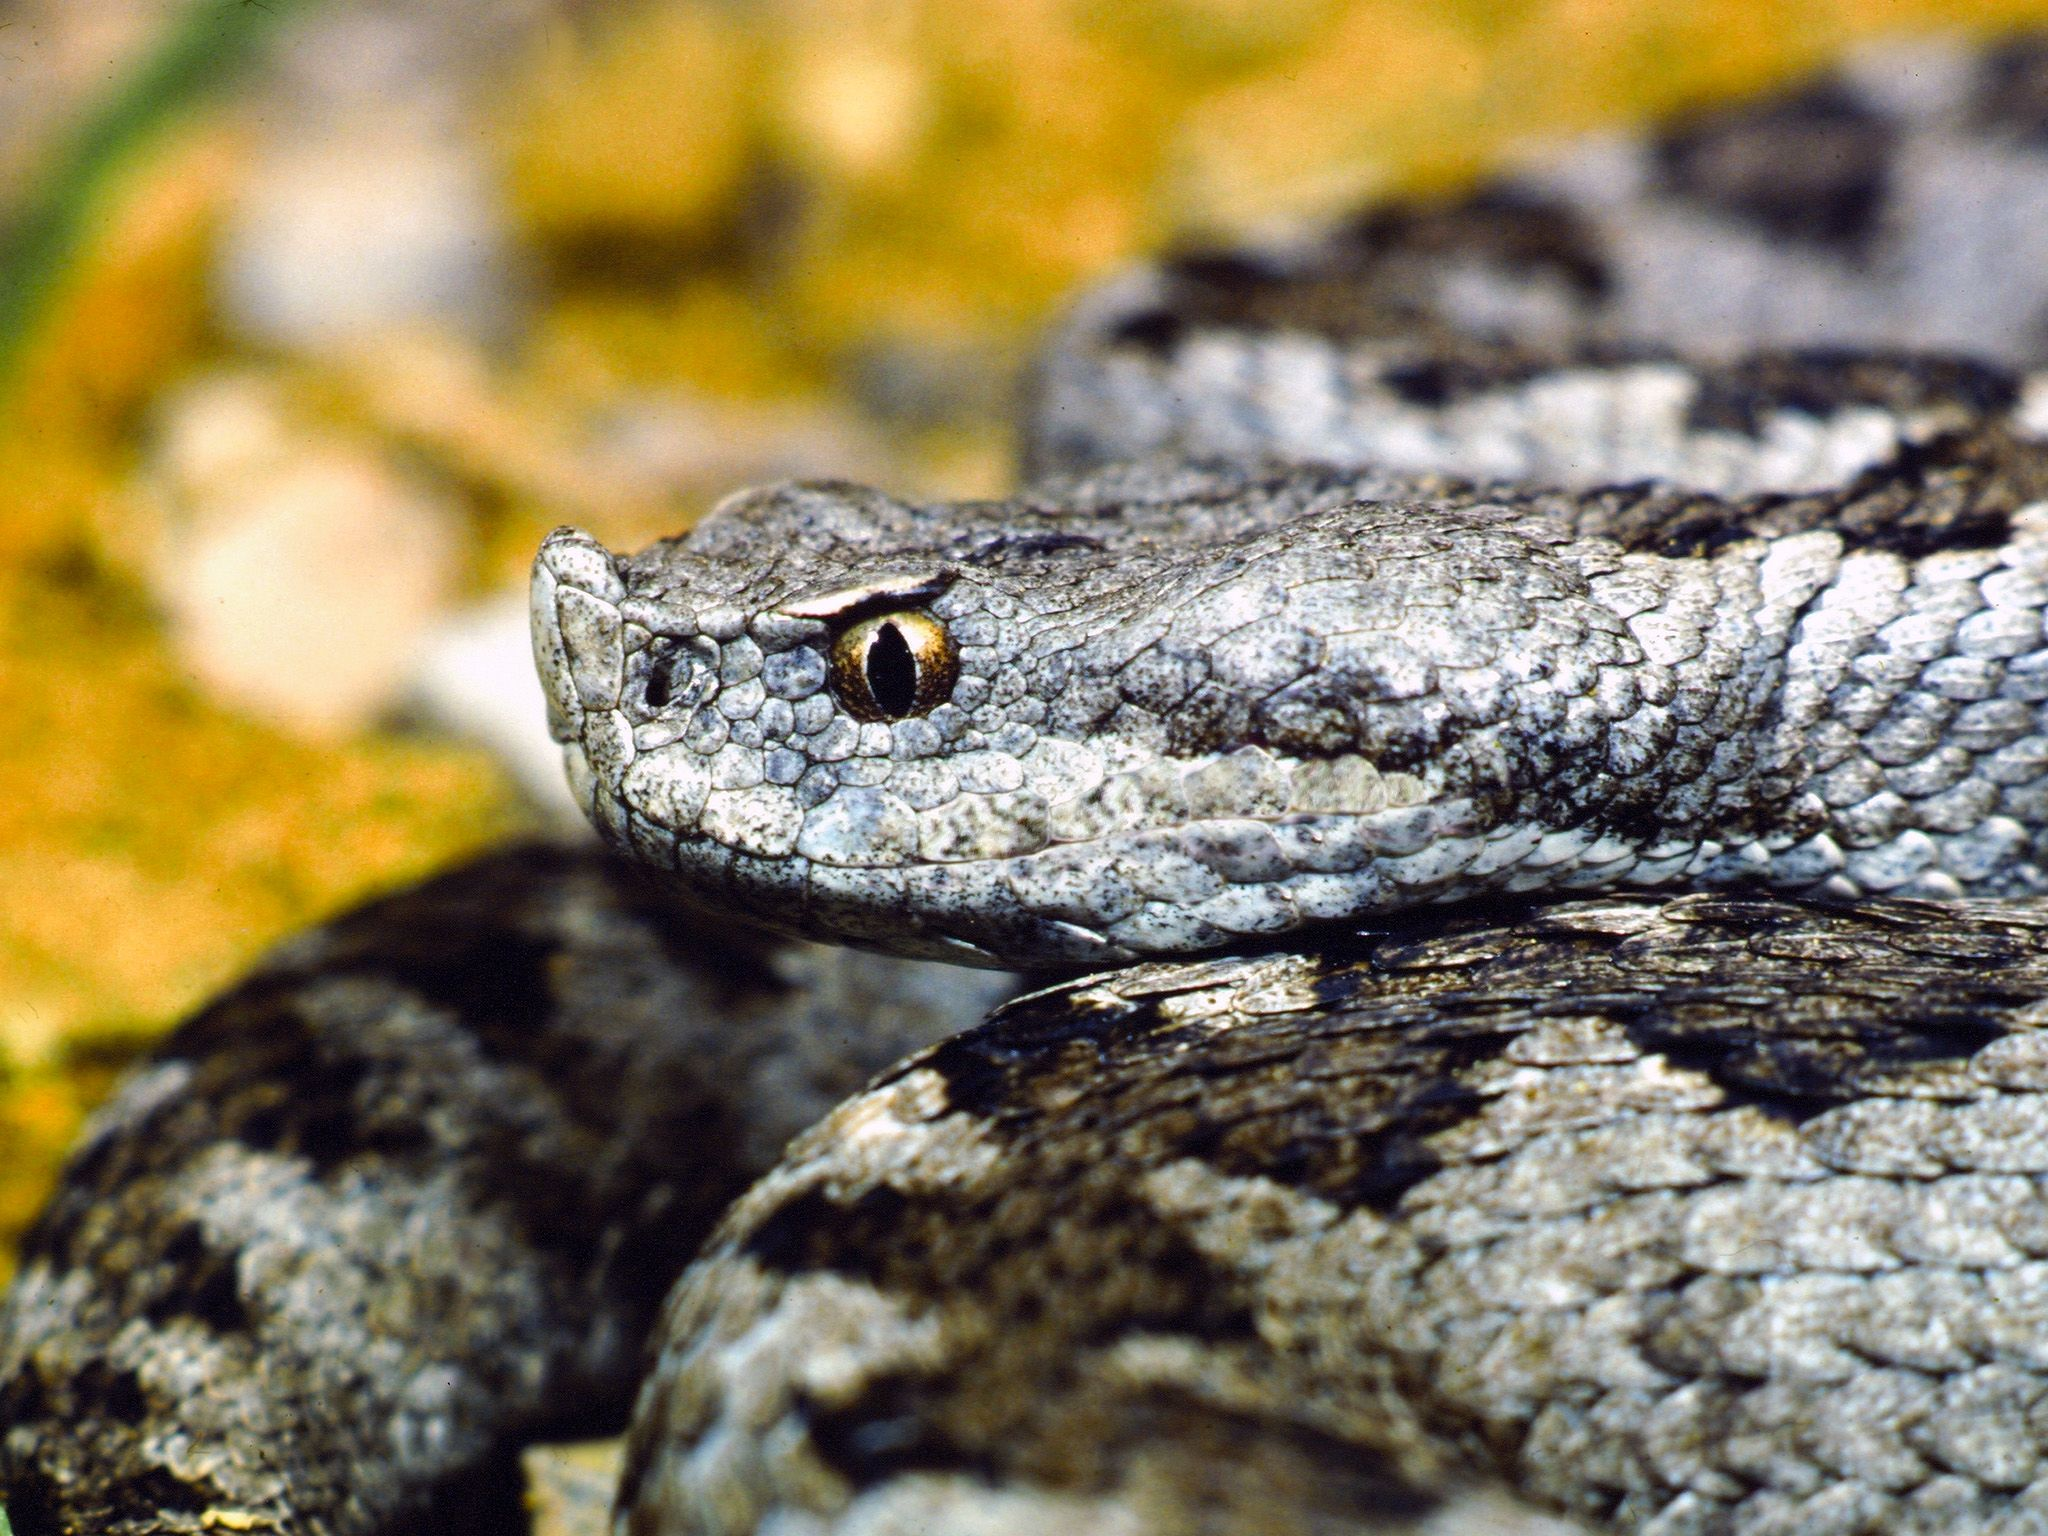 Spain: The Lataste's viper can be seen day or night but usually it hides under rocks. This... [Photo of the day - December 2014]